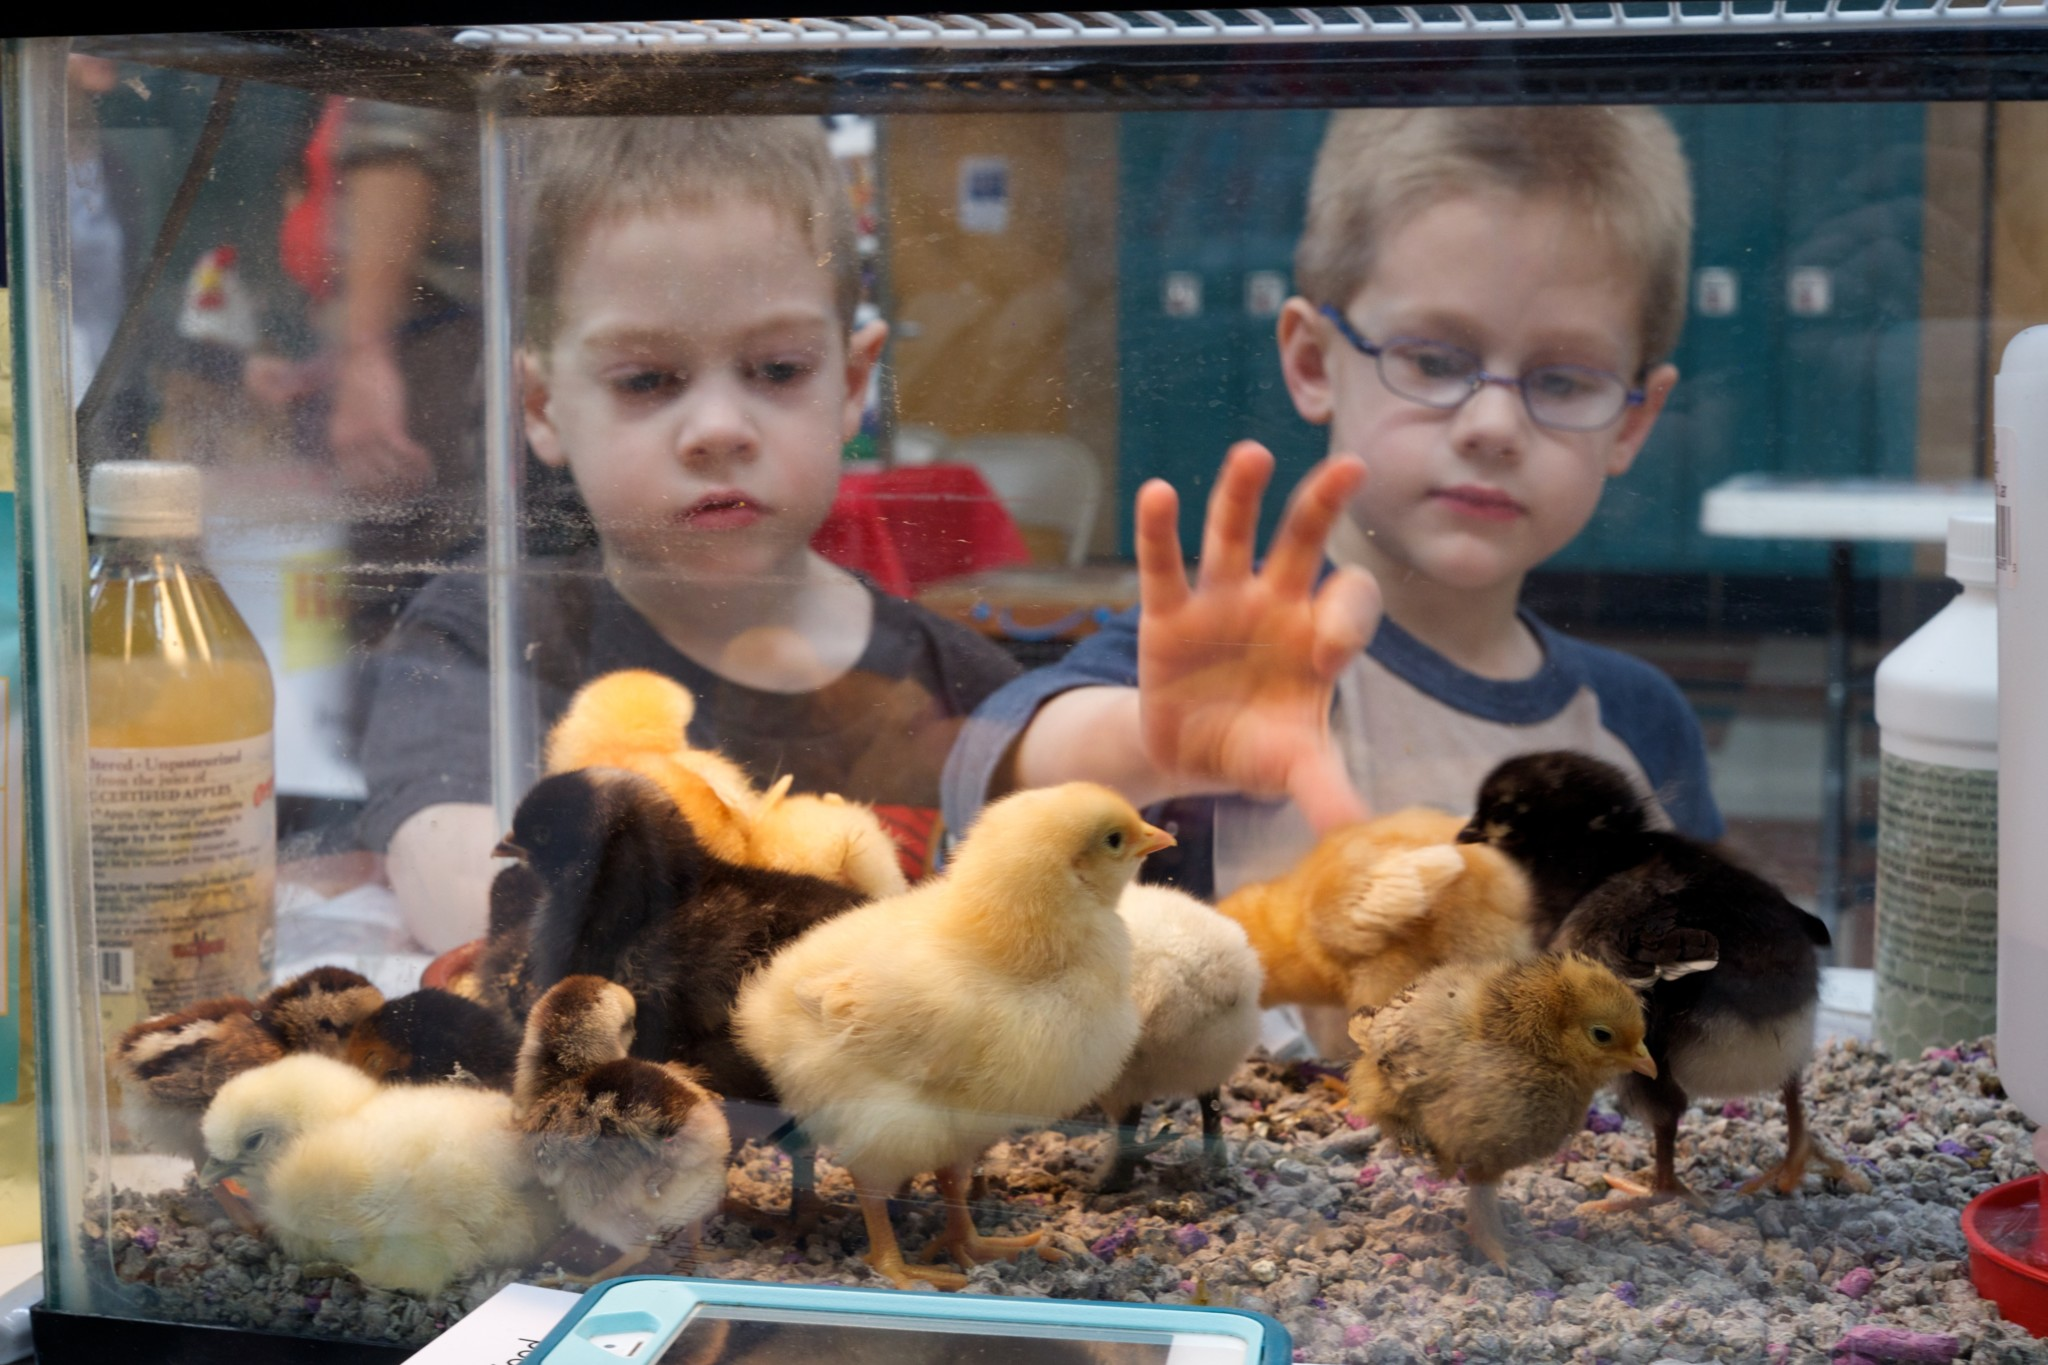 Kristen Hollinden's sons look in on a group of chicks huddling below a heat lamp. (Benjamin Unger)